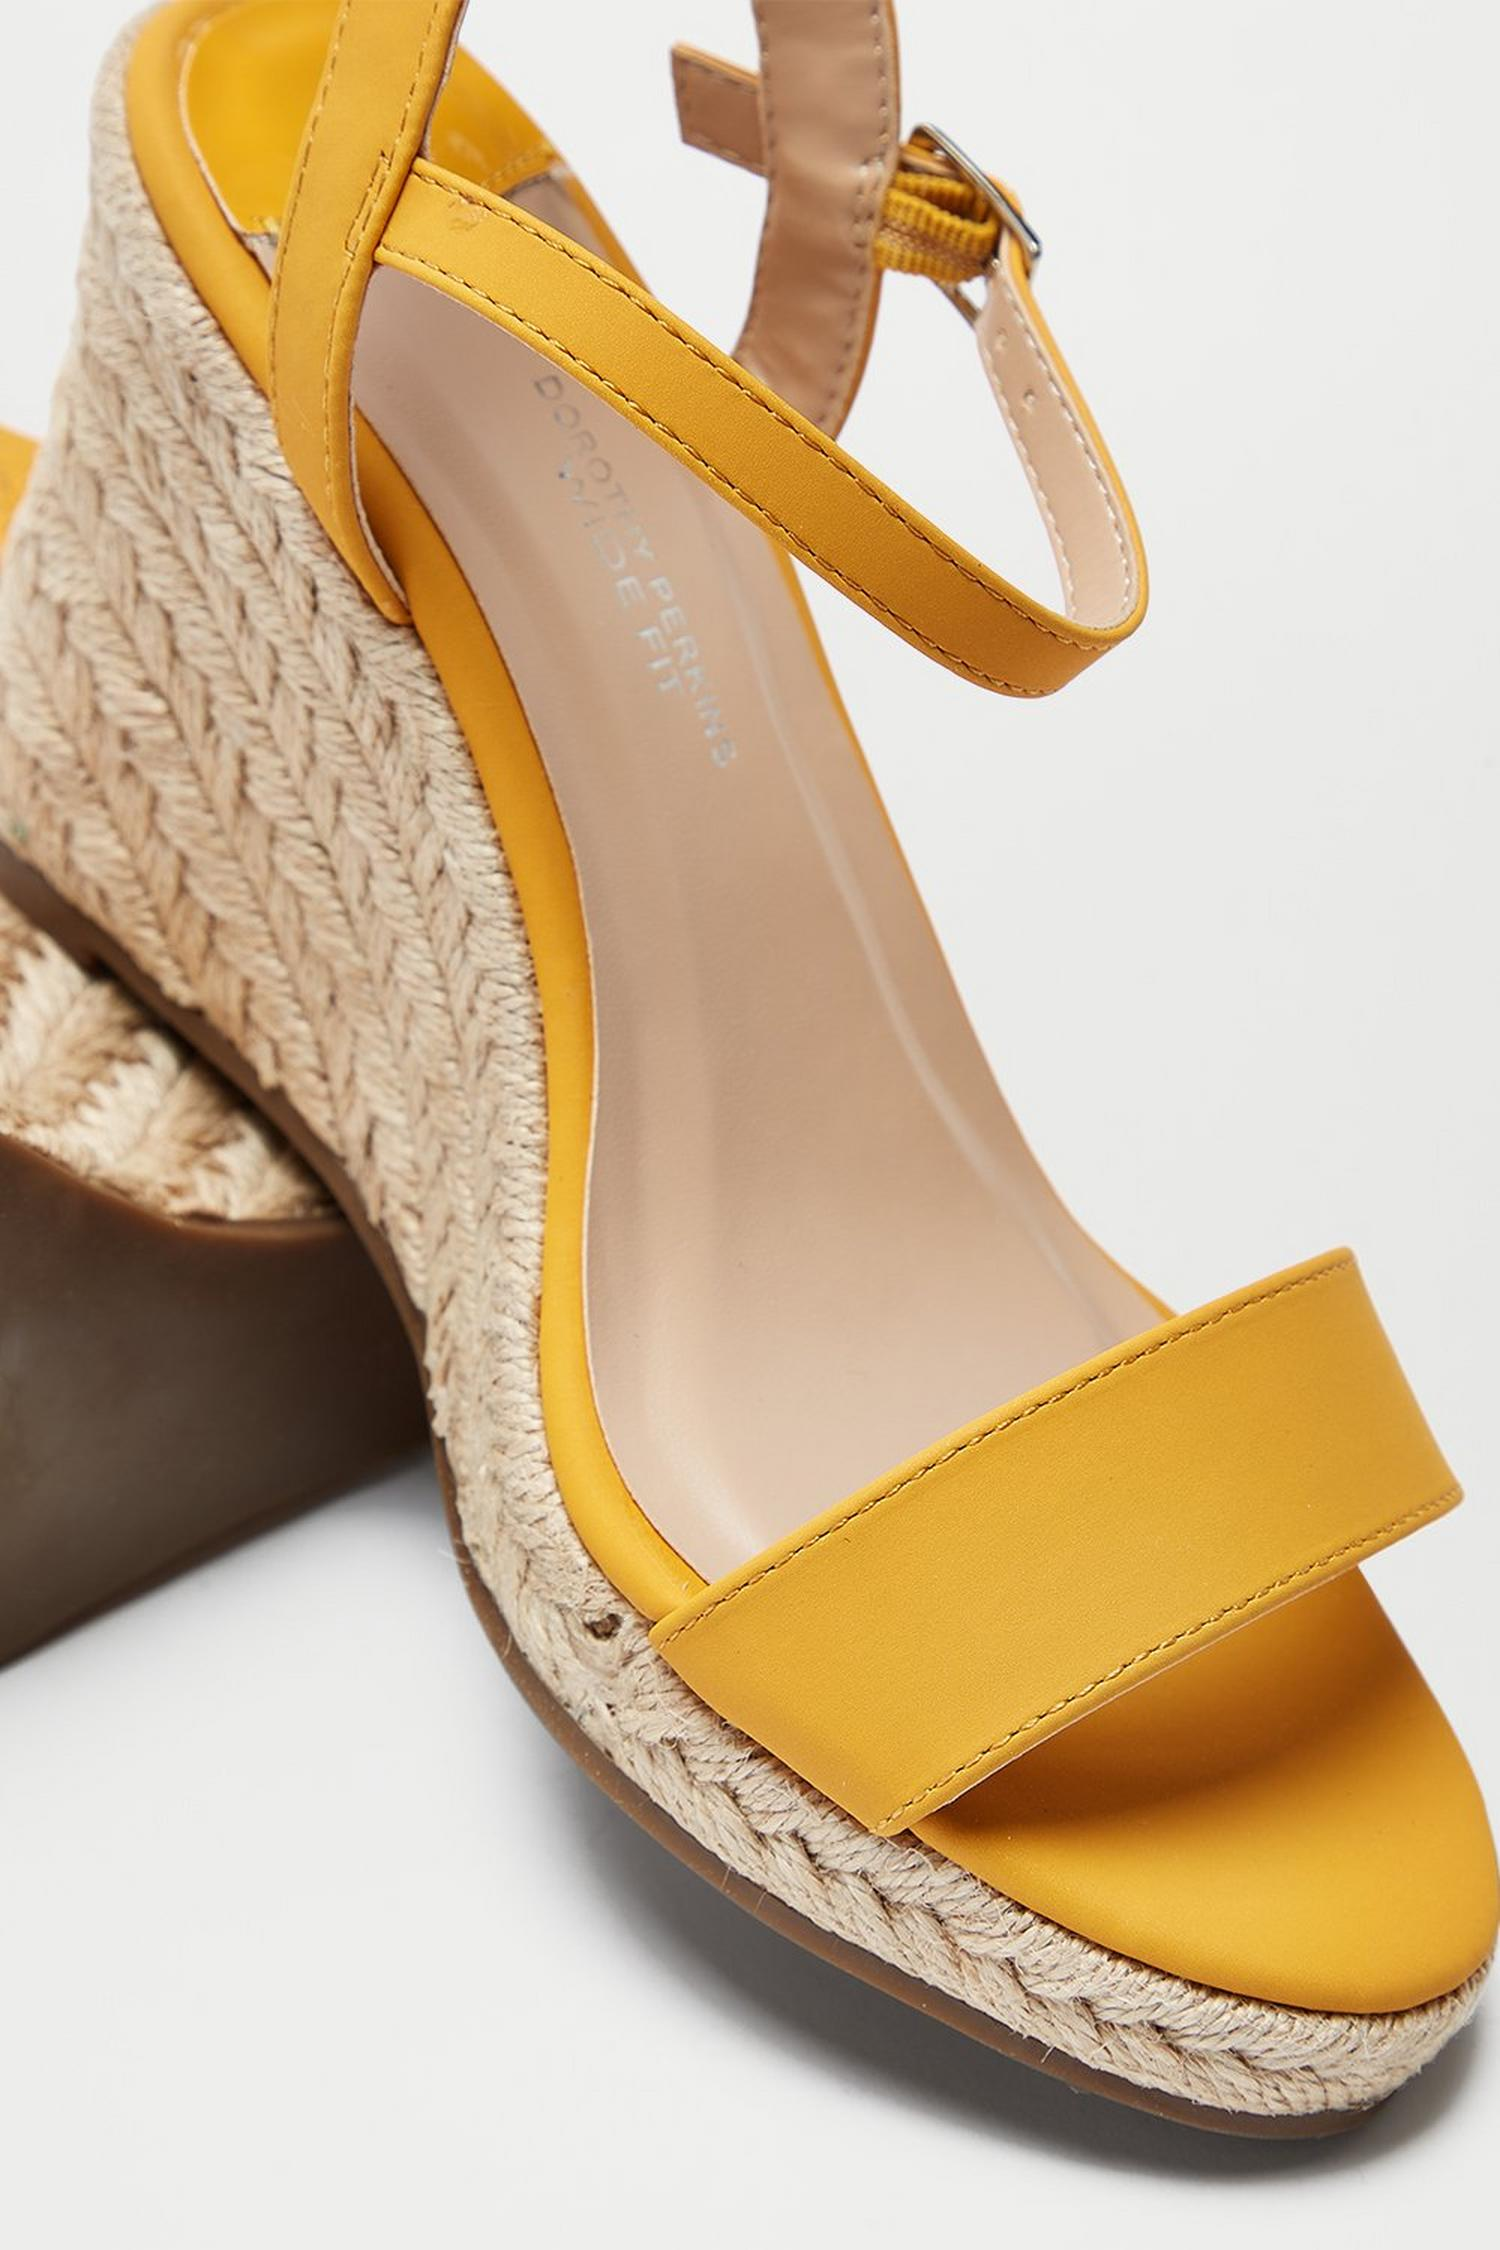 174 Wide Fit Yellow Ray Ray Wedge Sandals image number 4